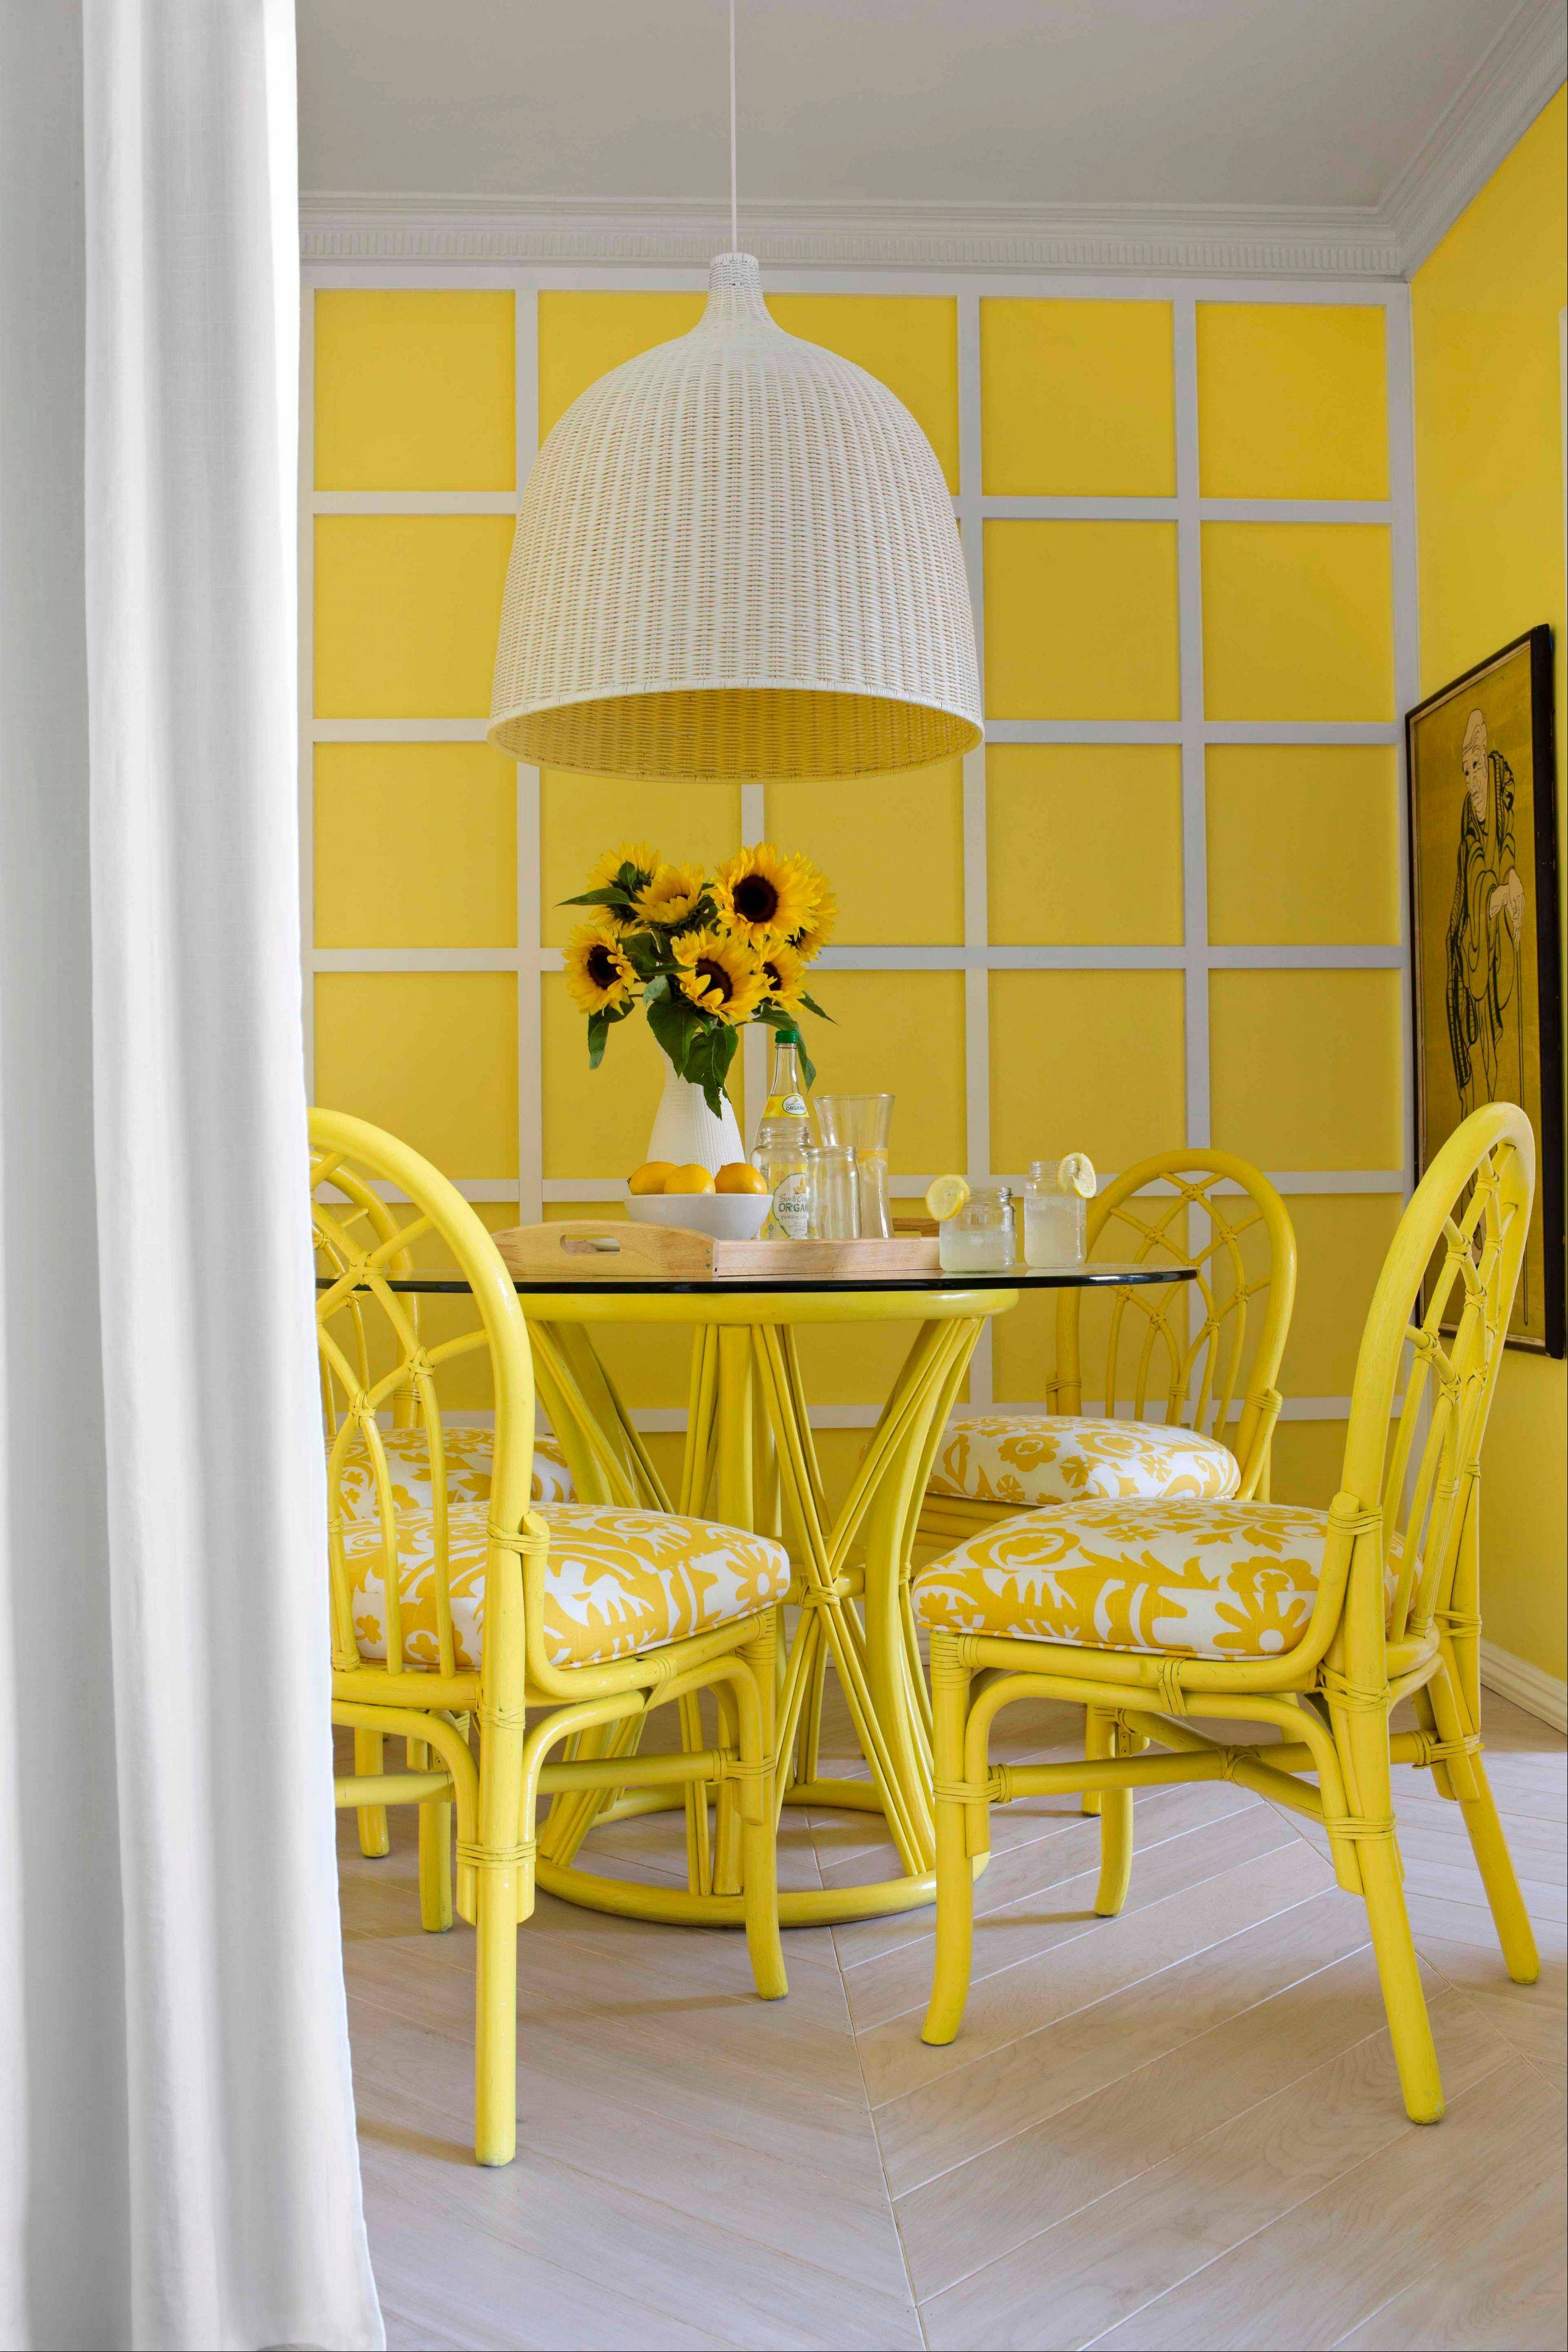 An Australian photographer's love of warm, golden yellow Australian sun from his home country inspired designer Brian Patrick Flynn to cover the entire space in bright yellow tones in his client's dining room in Los Angeles.